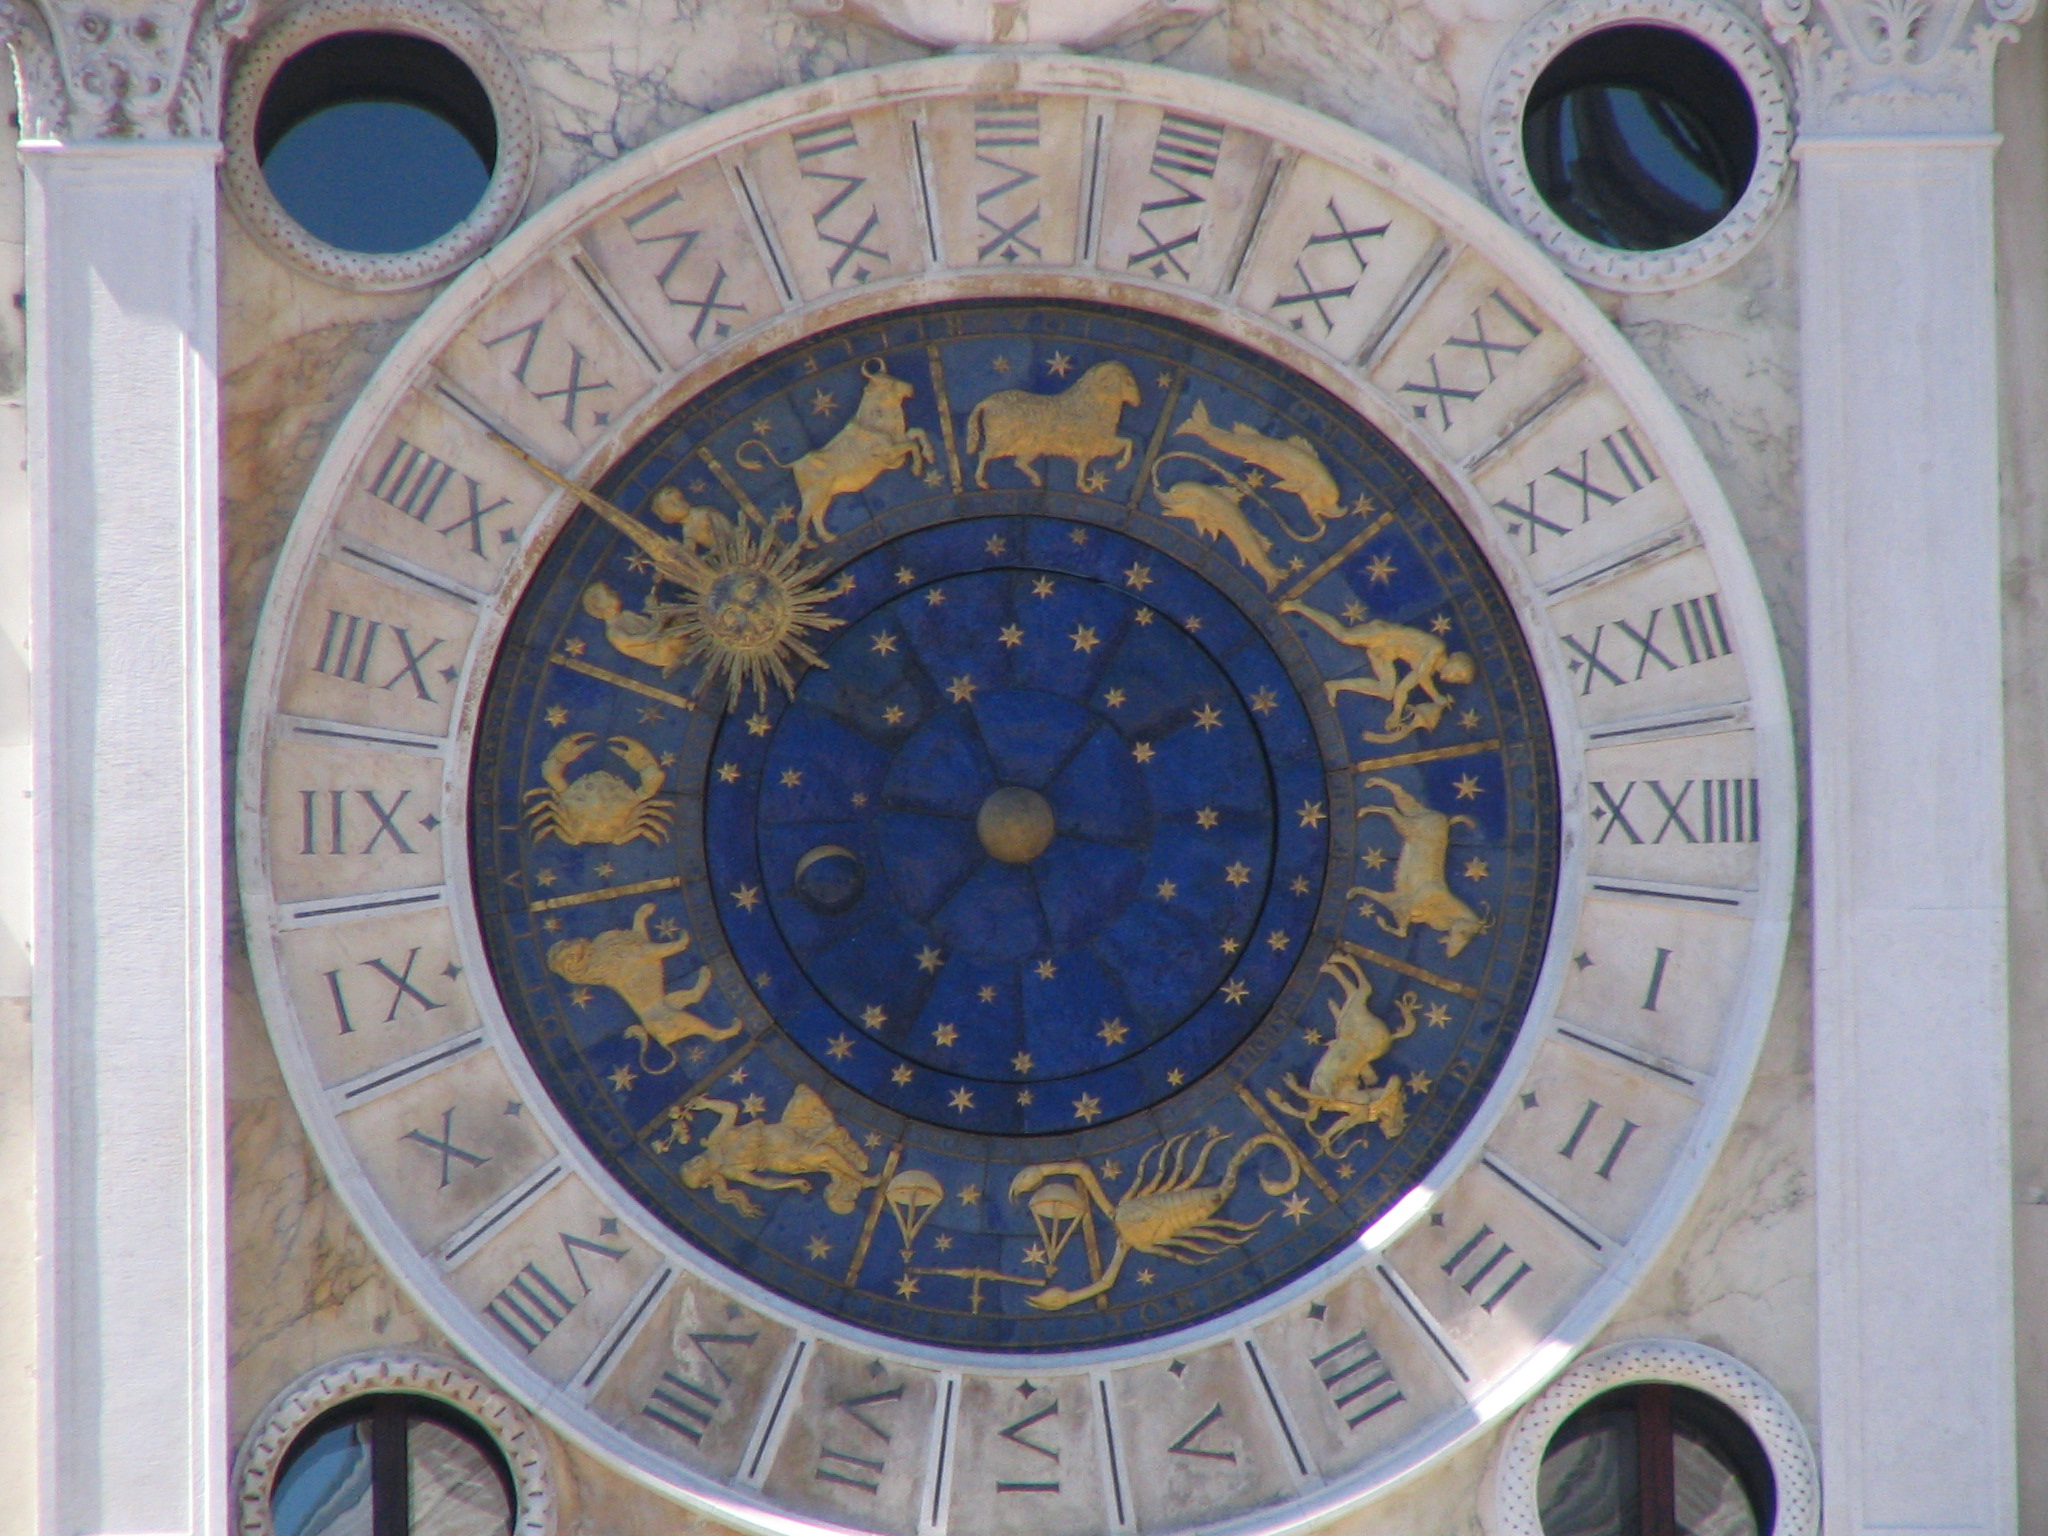 While Europe may have lagged behind the rest of the world when it came to adopting astrology, this astrological clock in Piazza San Marco in Venice stands testament to its strong influence.   Marcelo Teson/  Wikimedia Commons  (CC BY 2.0)